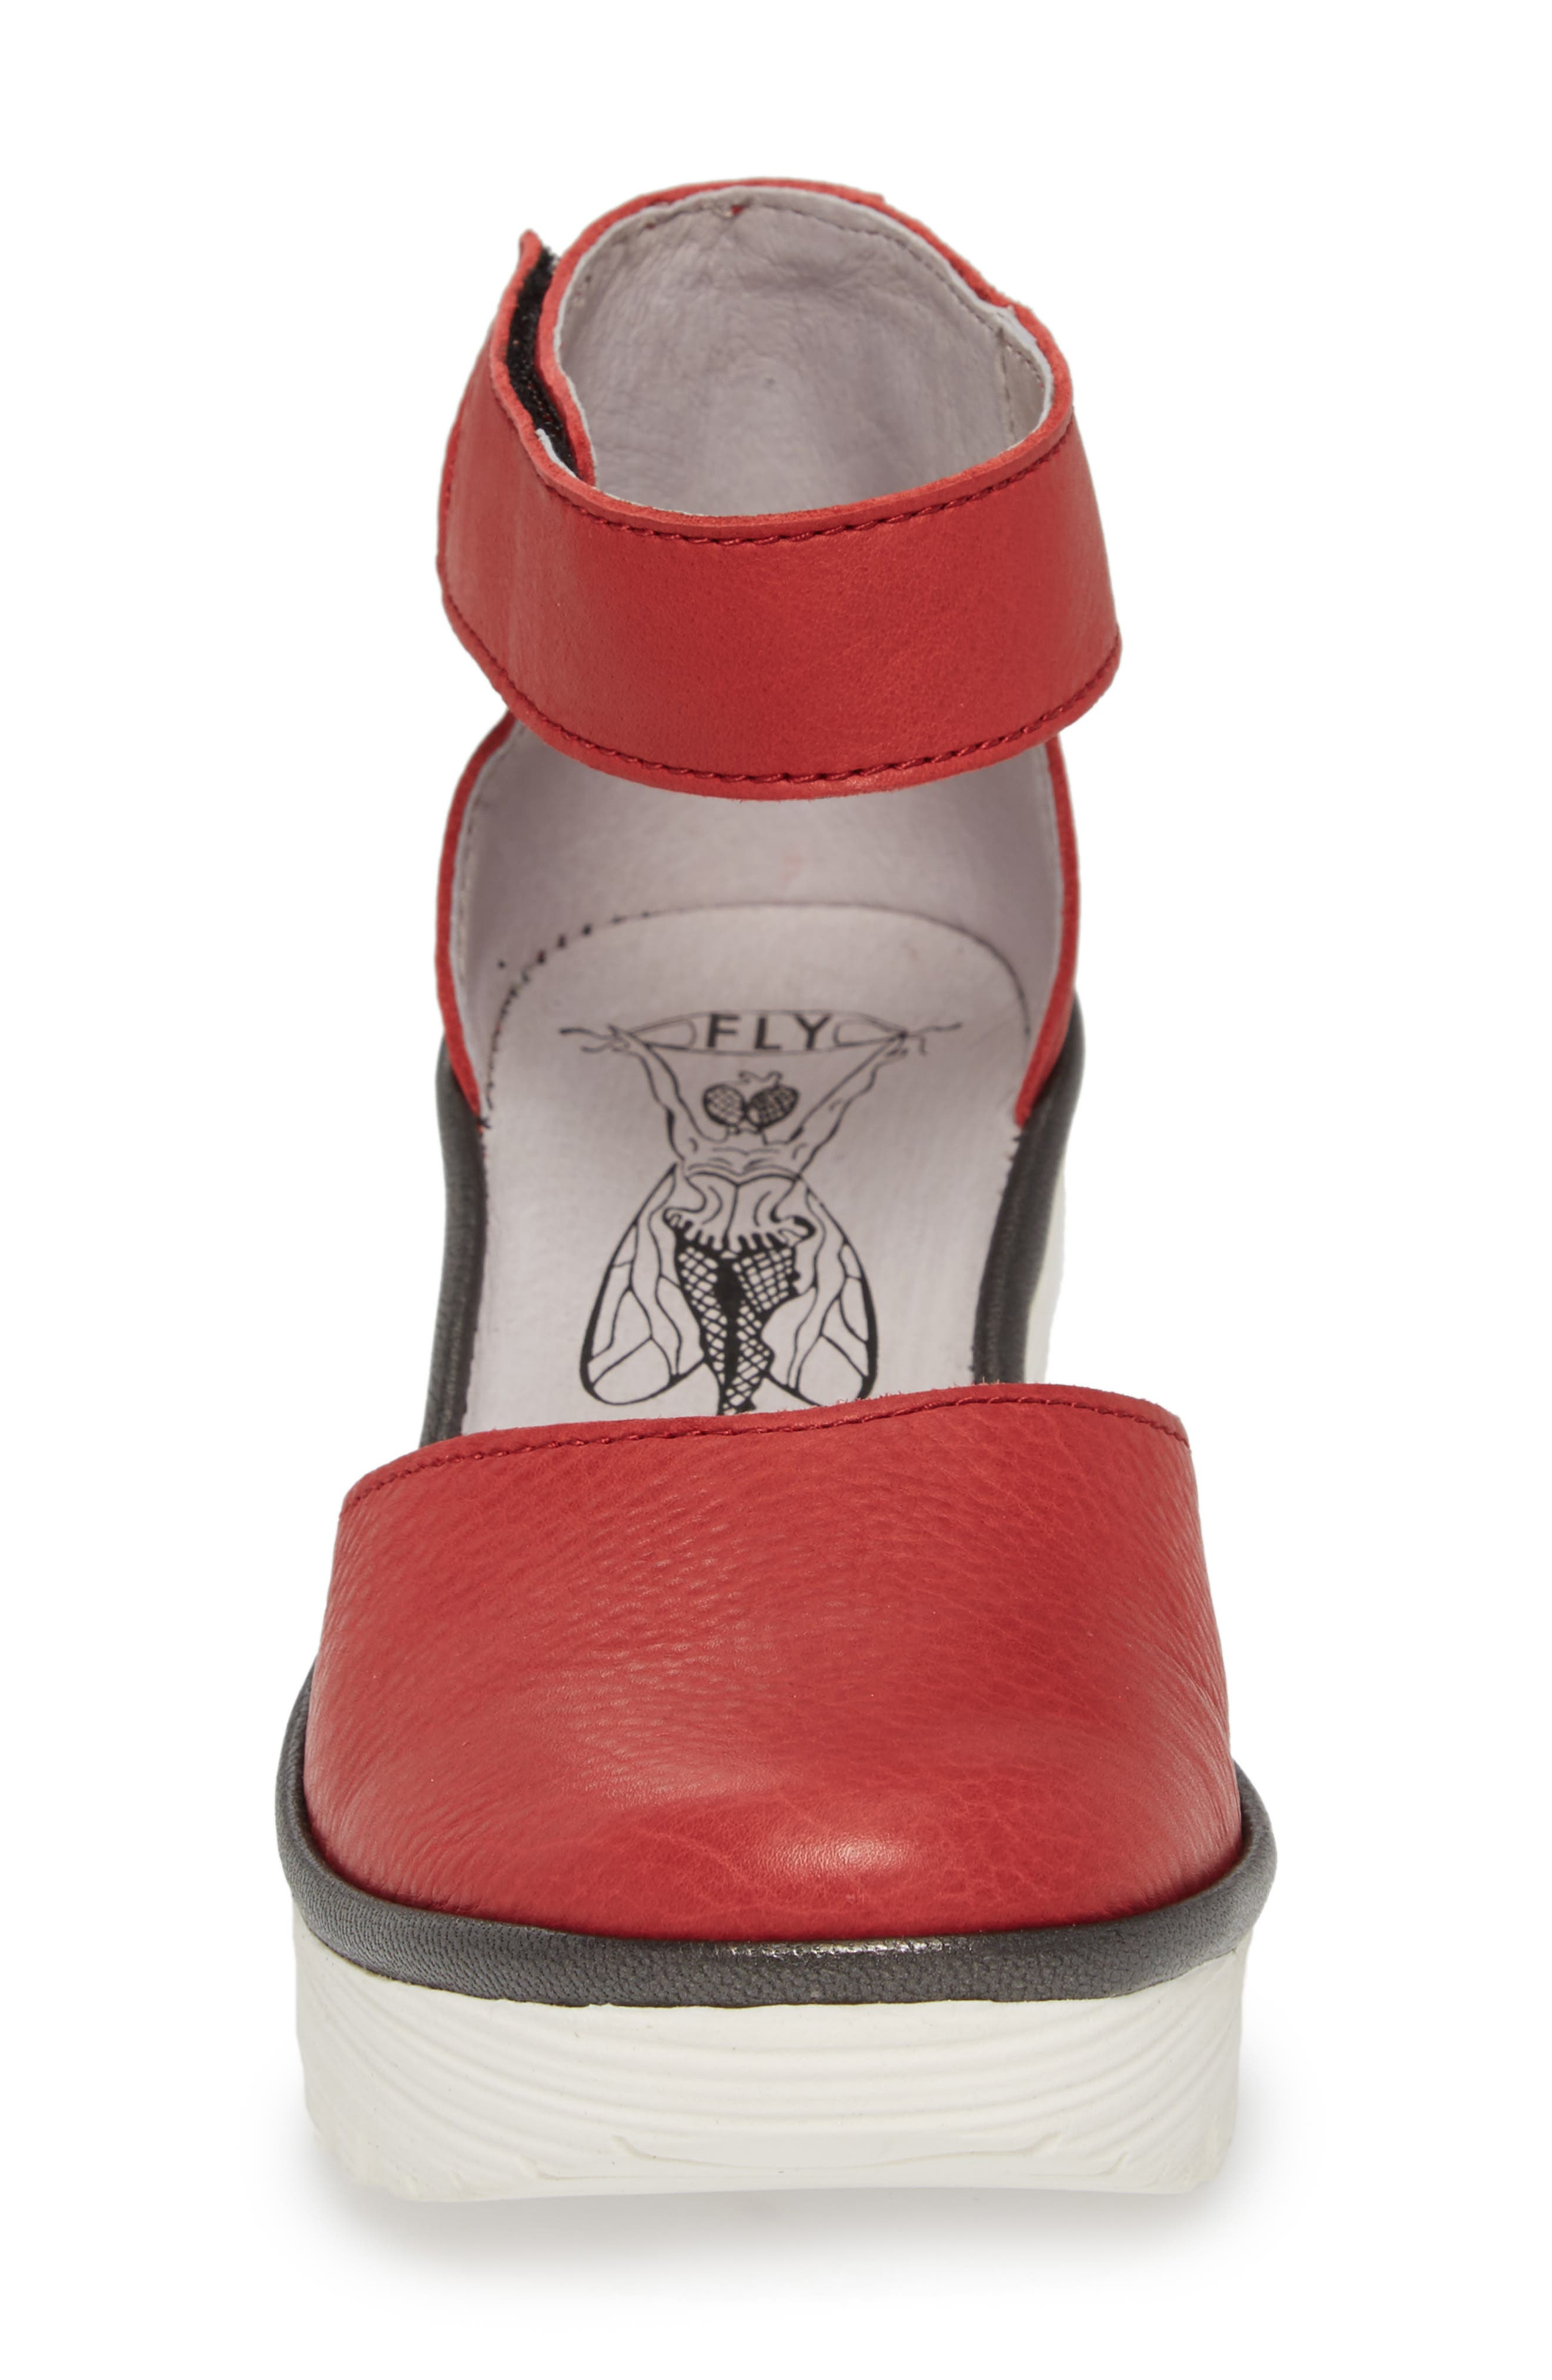 Yand Wedge Pump,                             Alternate thumbnail 4, color,                             RED/ OFF WHITE BRITO LEATHER